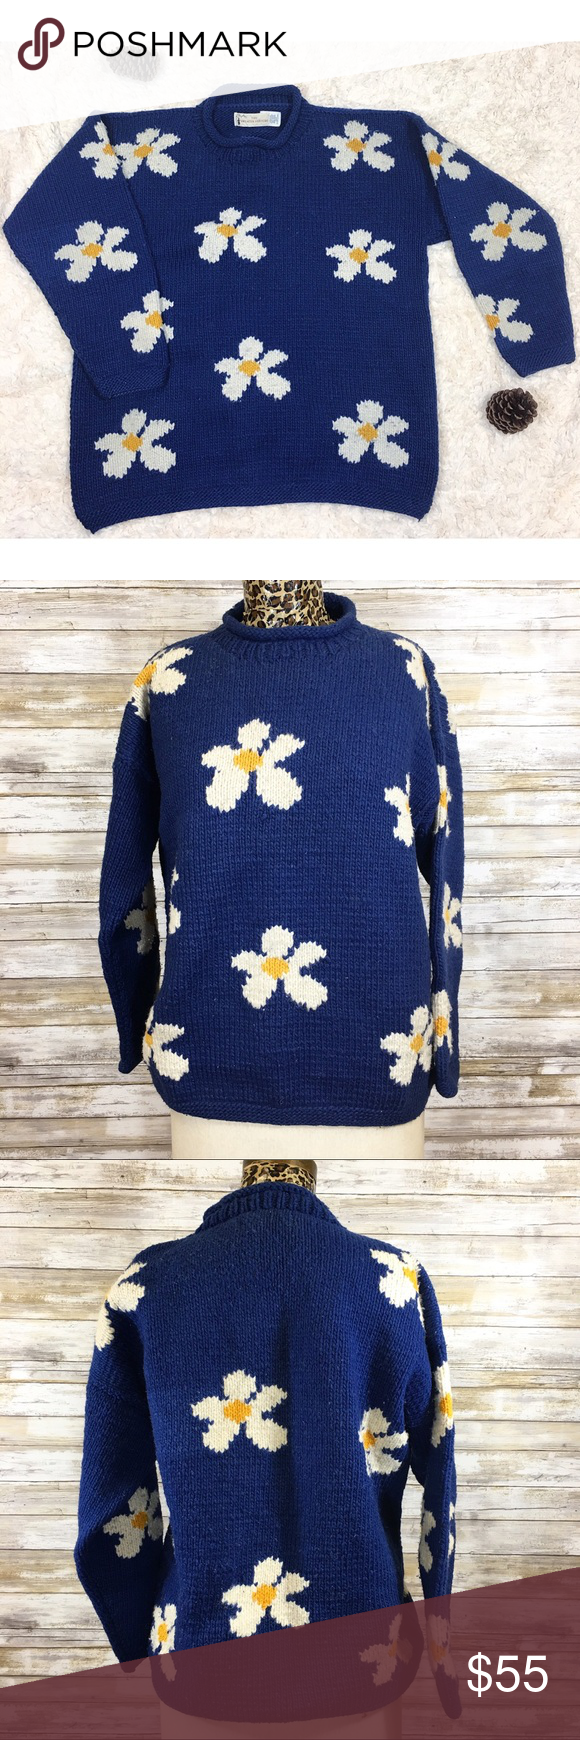 """Abstract 90's Mod Daisy 100% Ecuador Wool Sweater Shield yourself from sub-zeroes with sunshine and daisies with this ultra mod 100% wool, extra thick and cozy sweater handknit in Ecuador.  No size tag. Pullover. Condition: pre-owned. A little piling.  There is pet hair in this sweater so it was previously owned by someone with a pet, because of the way it is knit, some of it has become """"one with the sweater."""" I did pull a lot of it off though. ❤️ Measurements (flat): Armpit to armpit: 24""""…"""